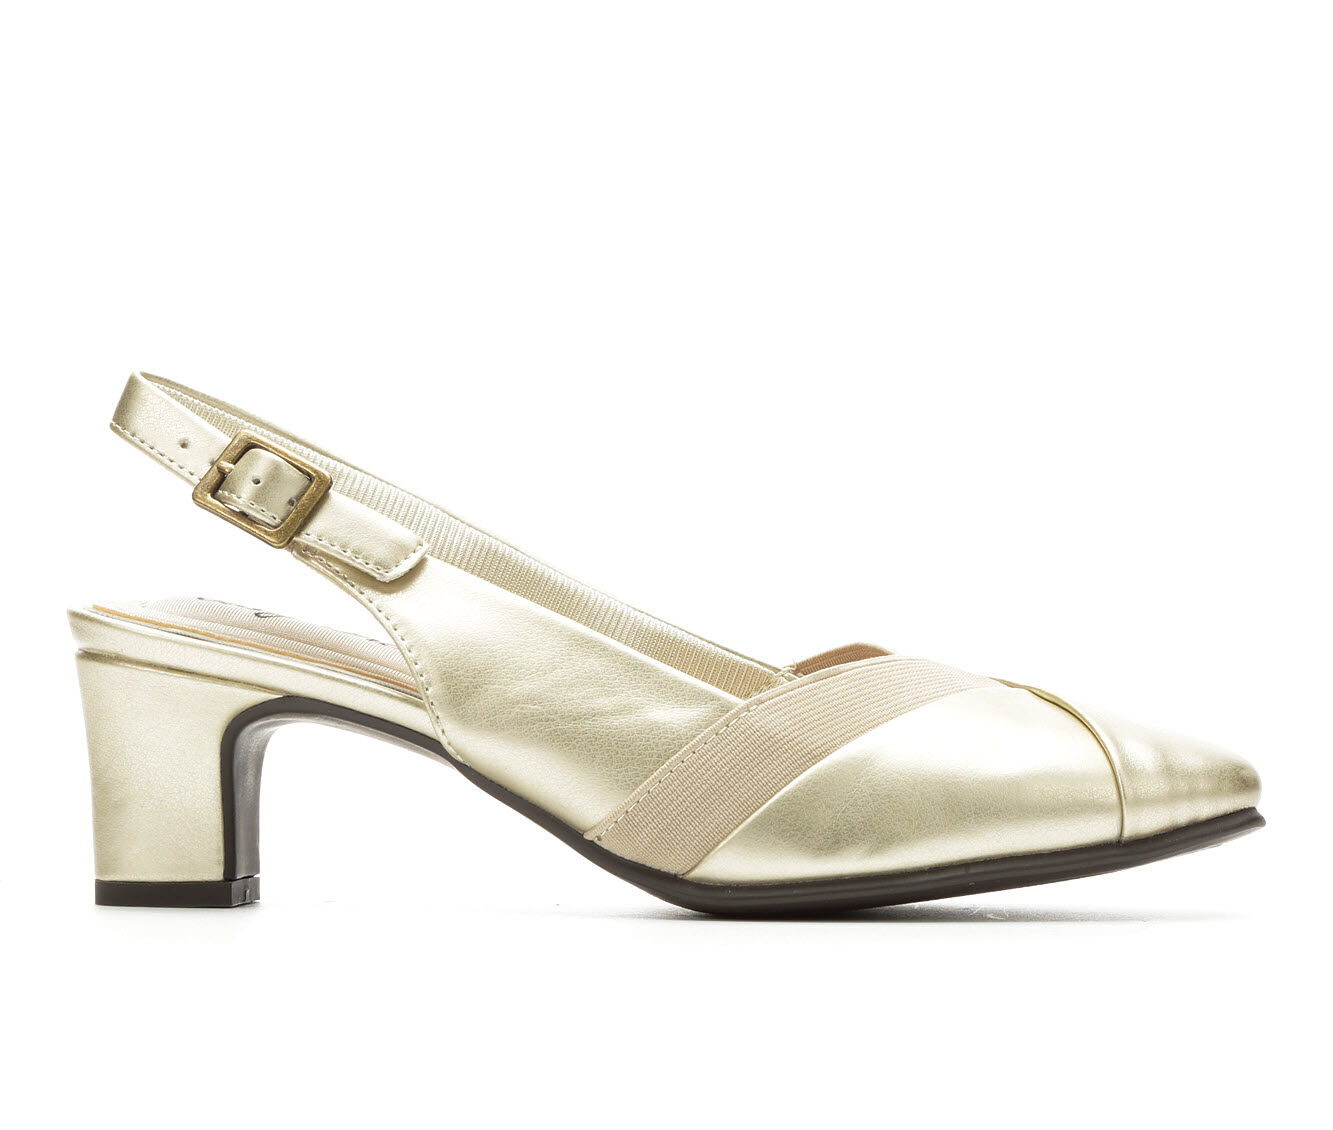 new arrivals Women's Easy Street Erika Shoes Champagne